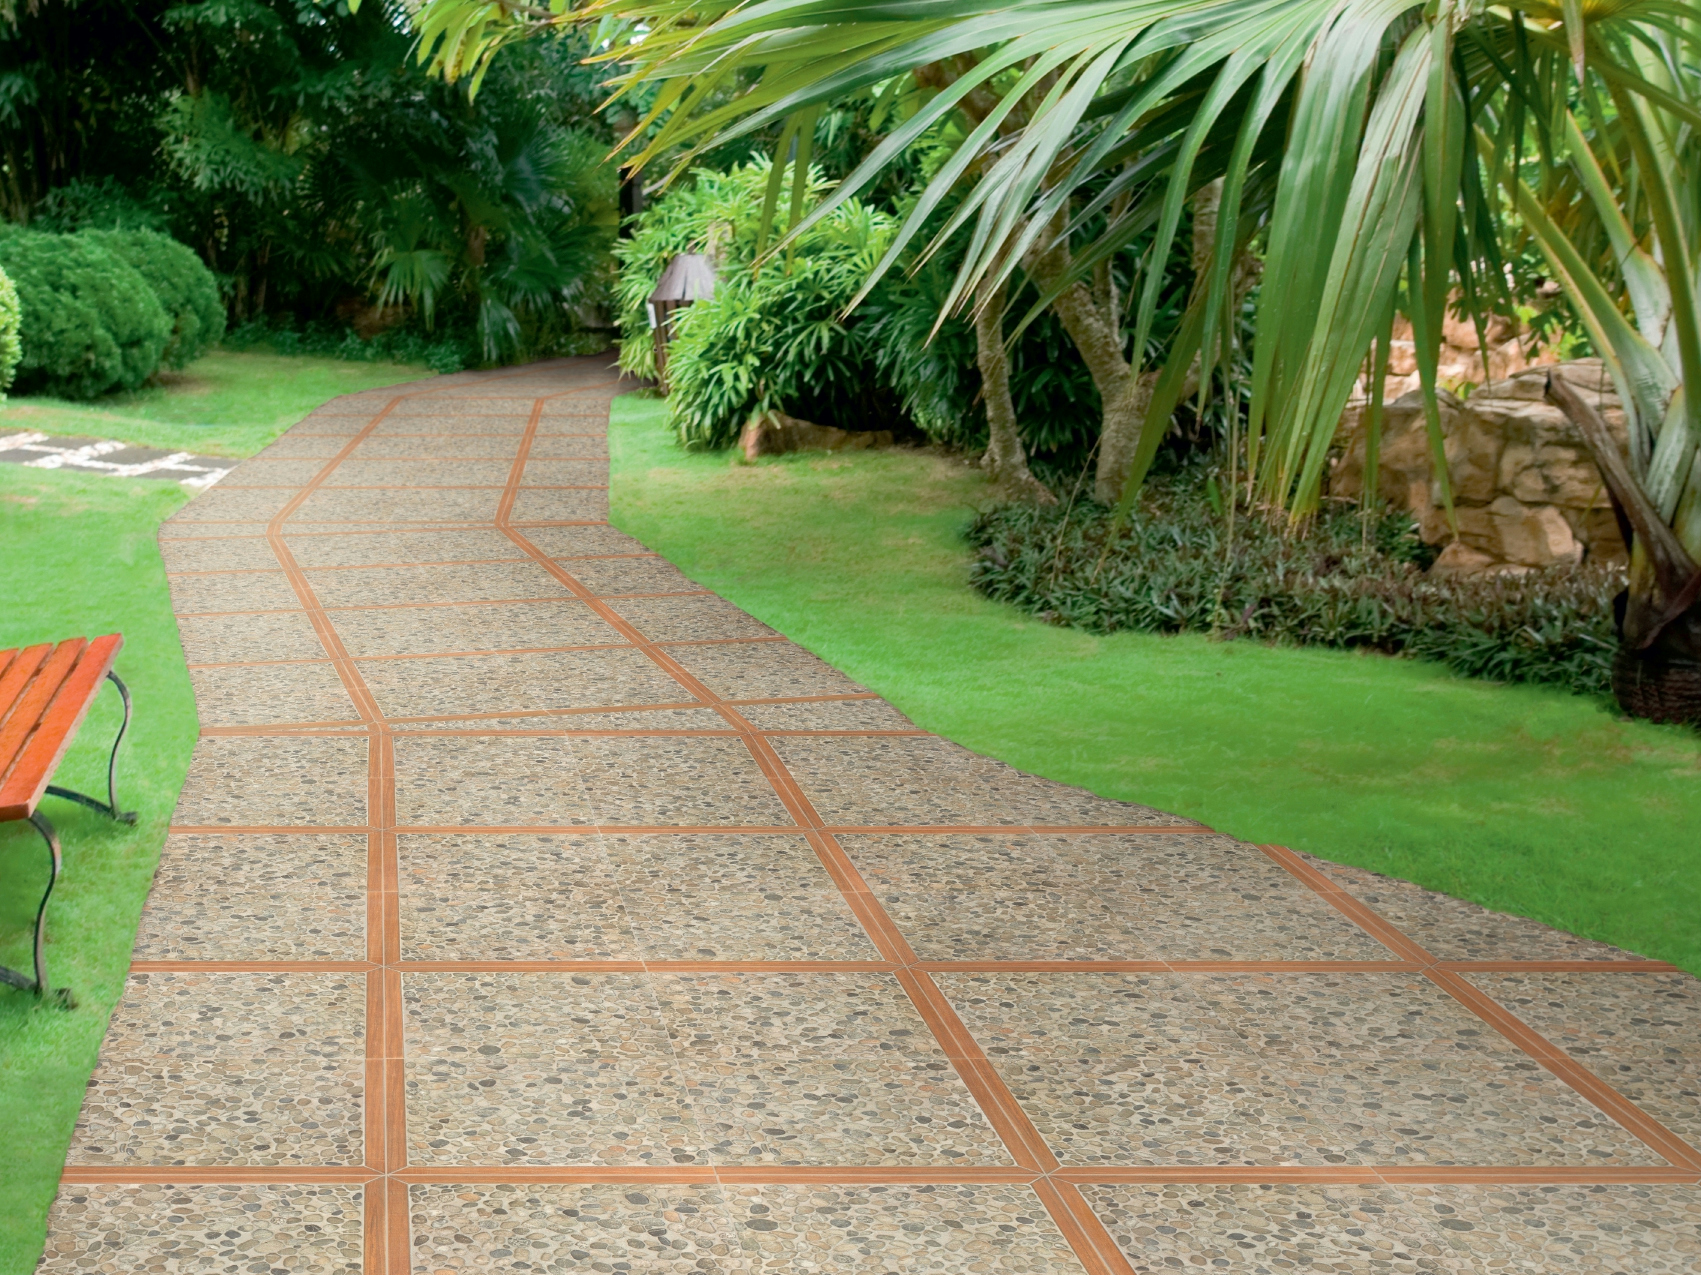 Outdoor Flooring Tiles jalor cafe 2 x 2 in Outdoor Floor Tiles Products Realonda Archiproducts